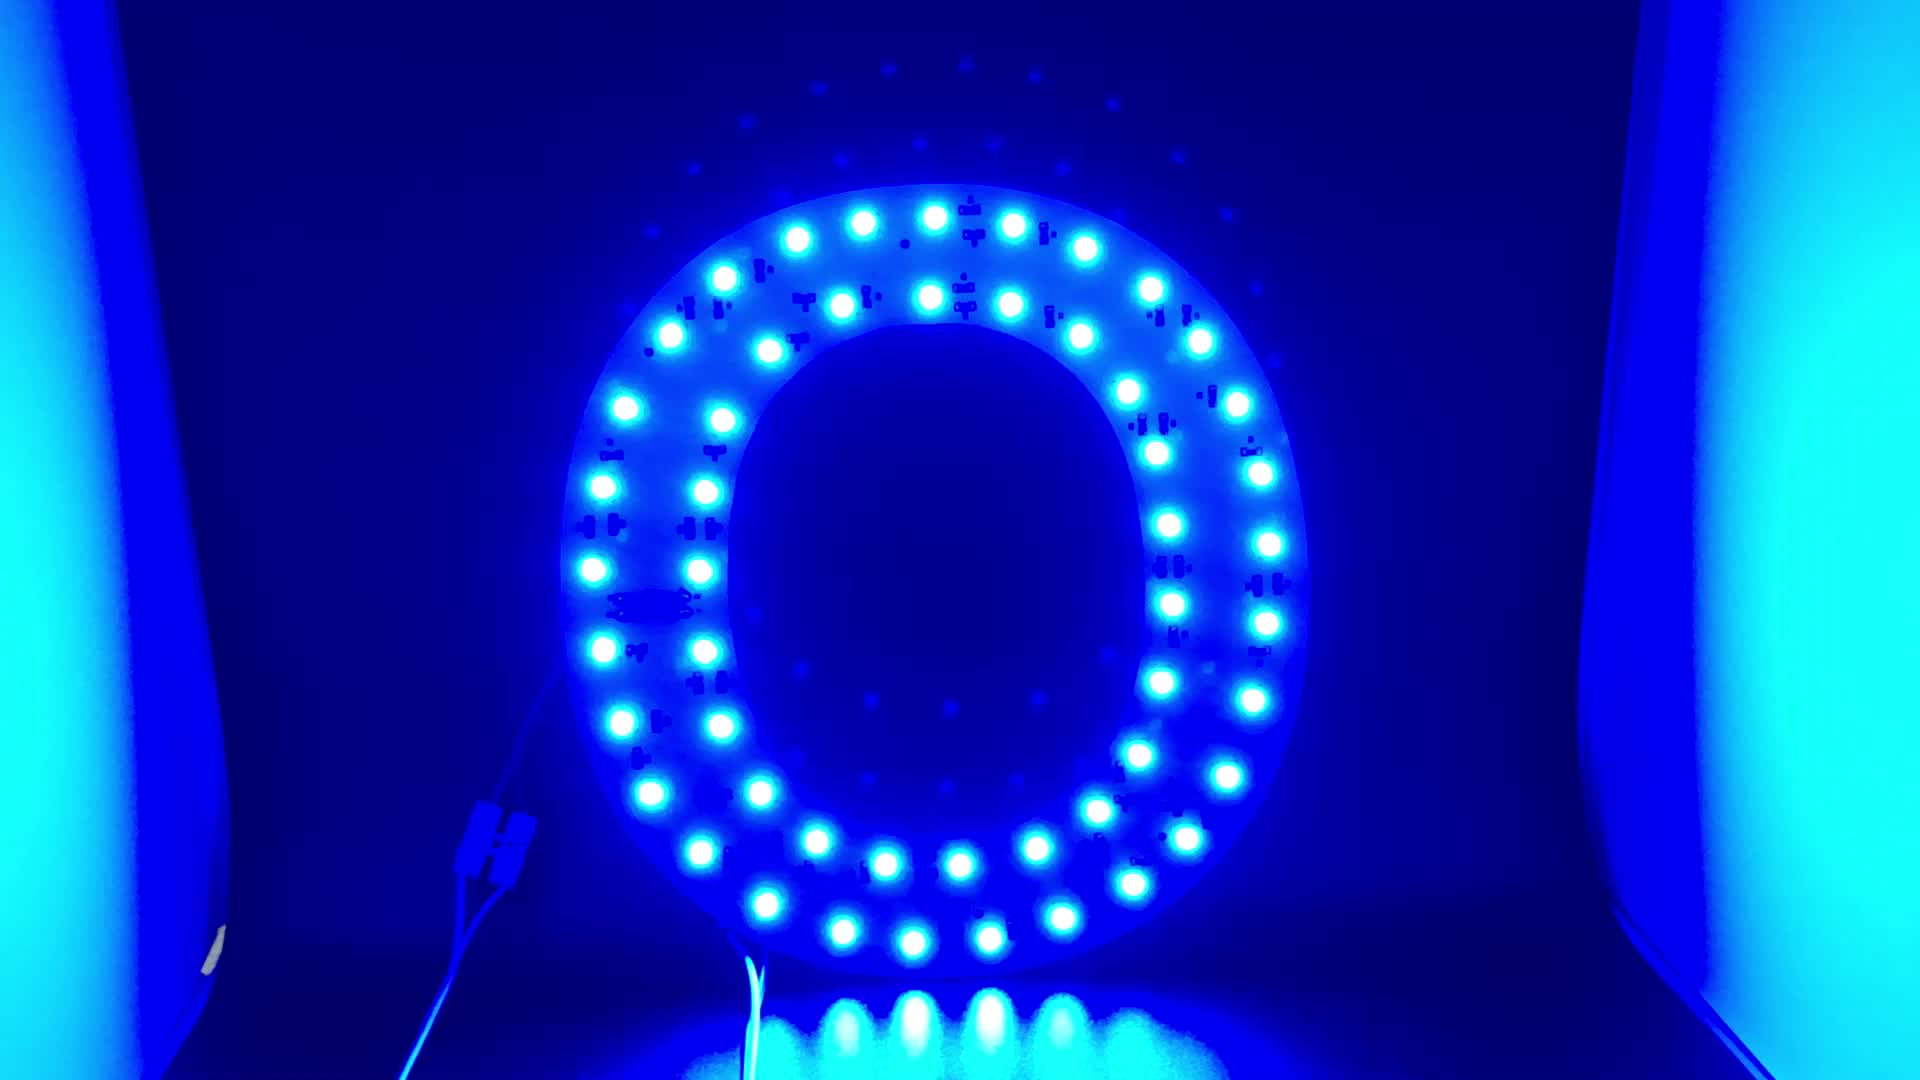 Good price RGB led alphabet letter SMD 5050 RGB module DC12V IP44 for led letters light decoration led module Capital letter RGB